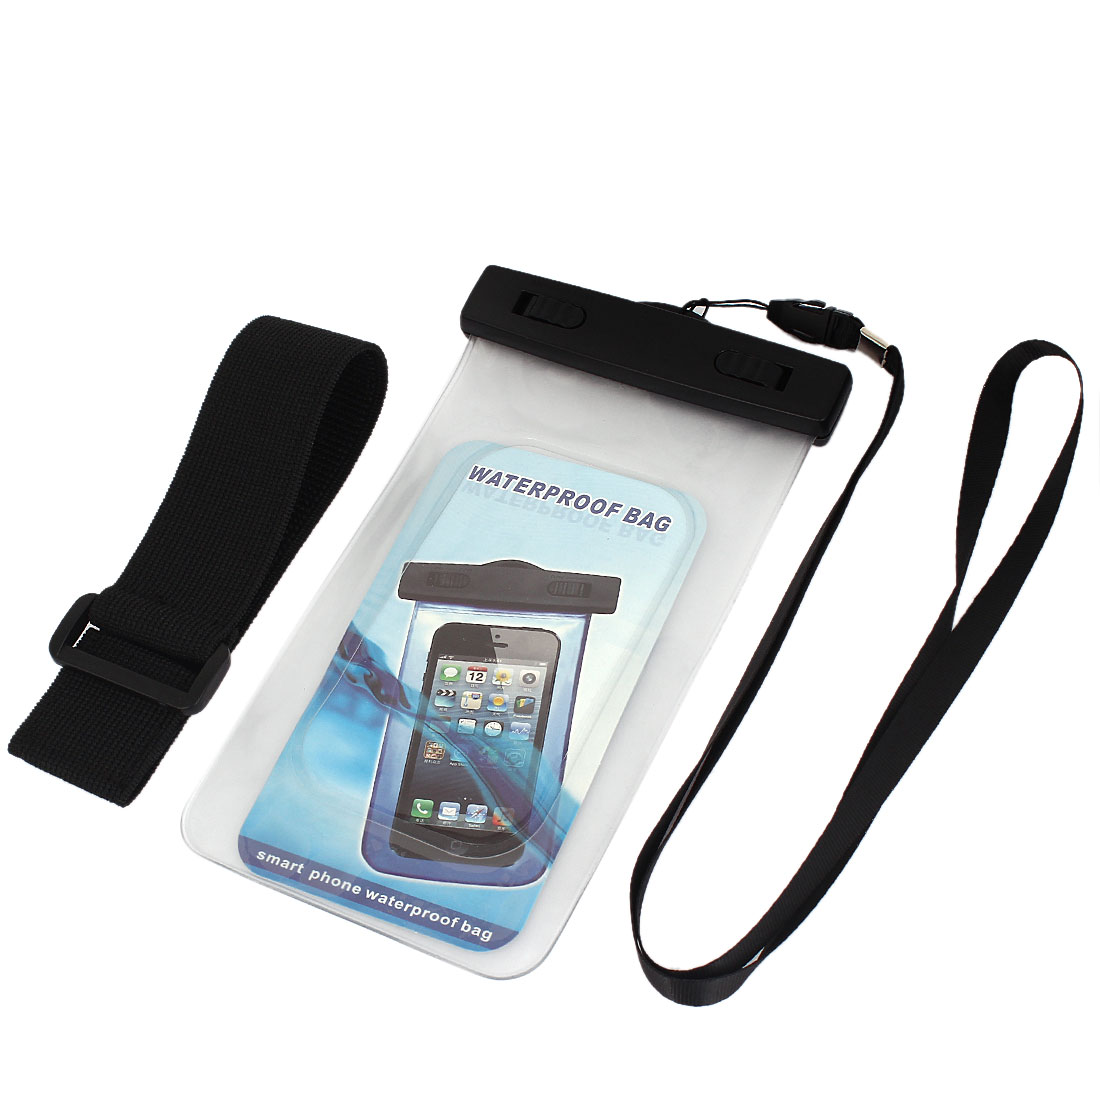 Waterproof Bag Case Holder Pouch Clear for iPhone 5G w Neck Strap Armband